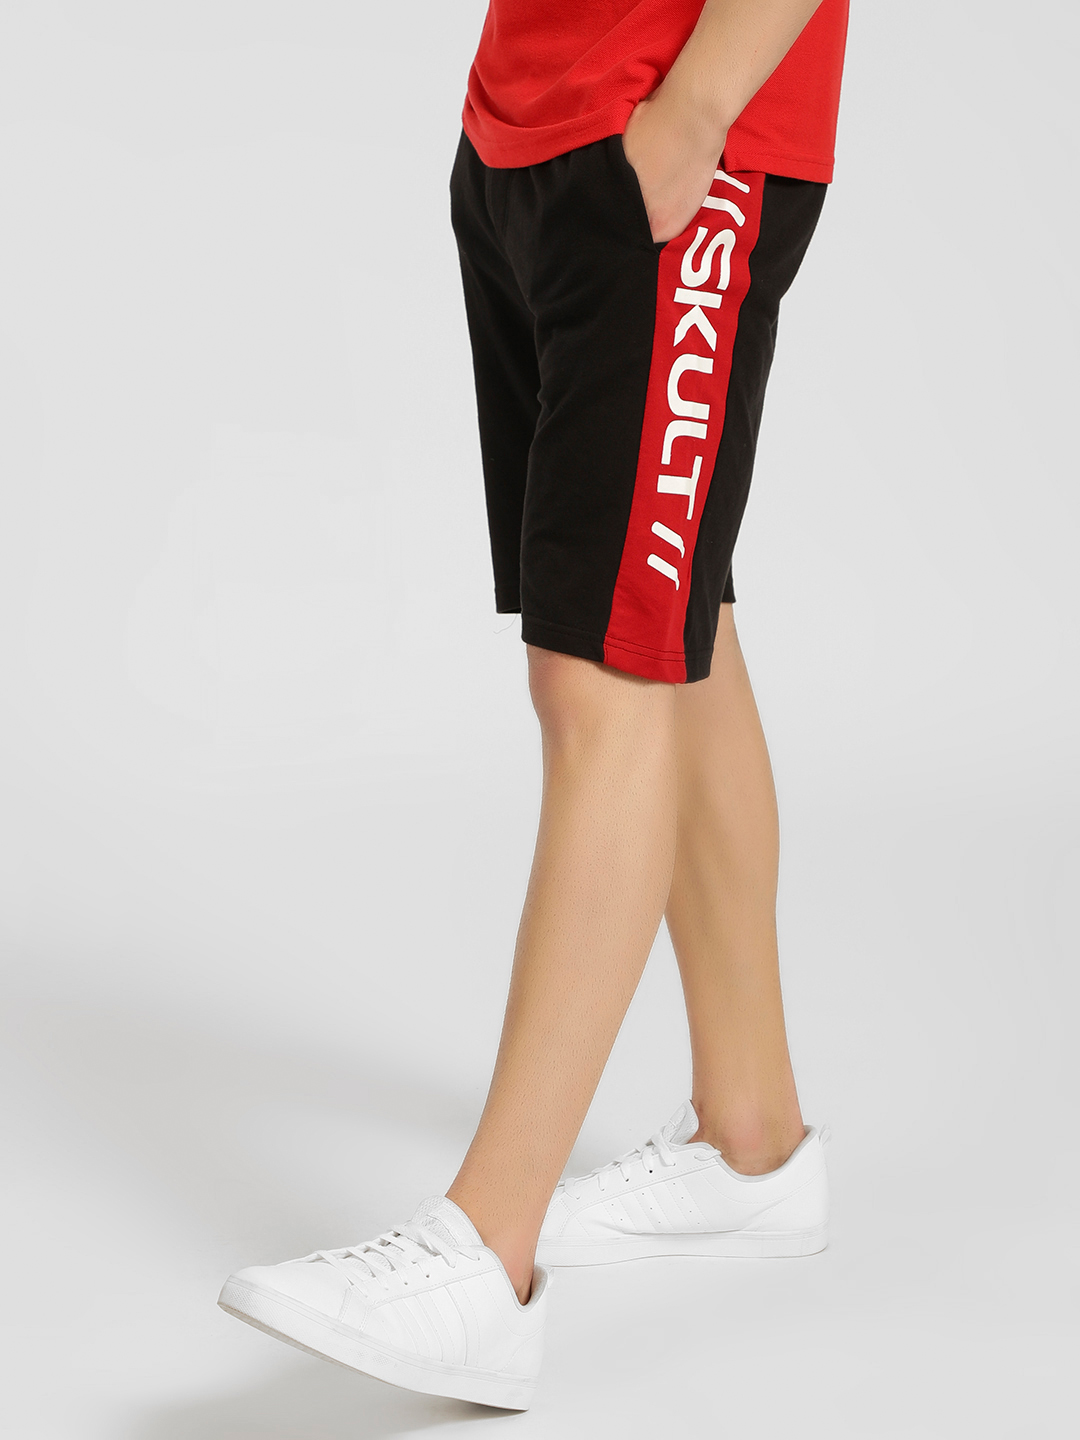 SKULT By Shahid Kapoor Multi Text Side Tape Shorts 1